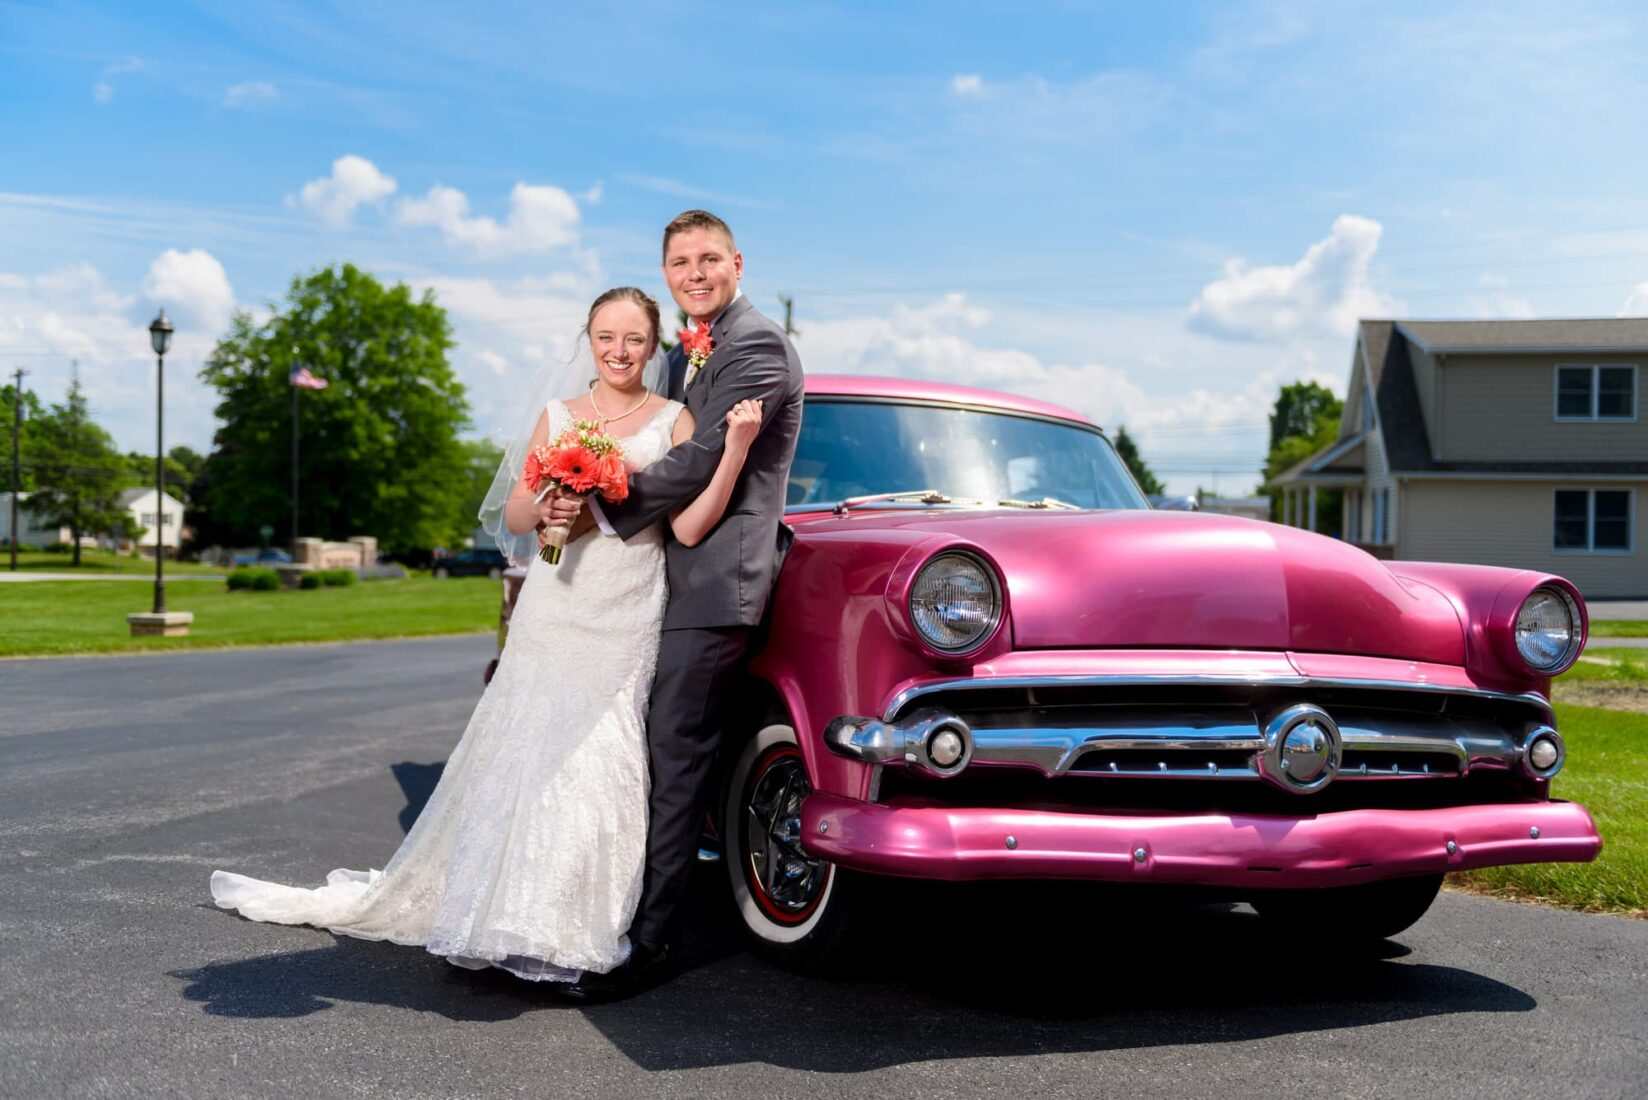 Wedding Photography with cars